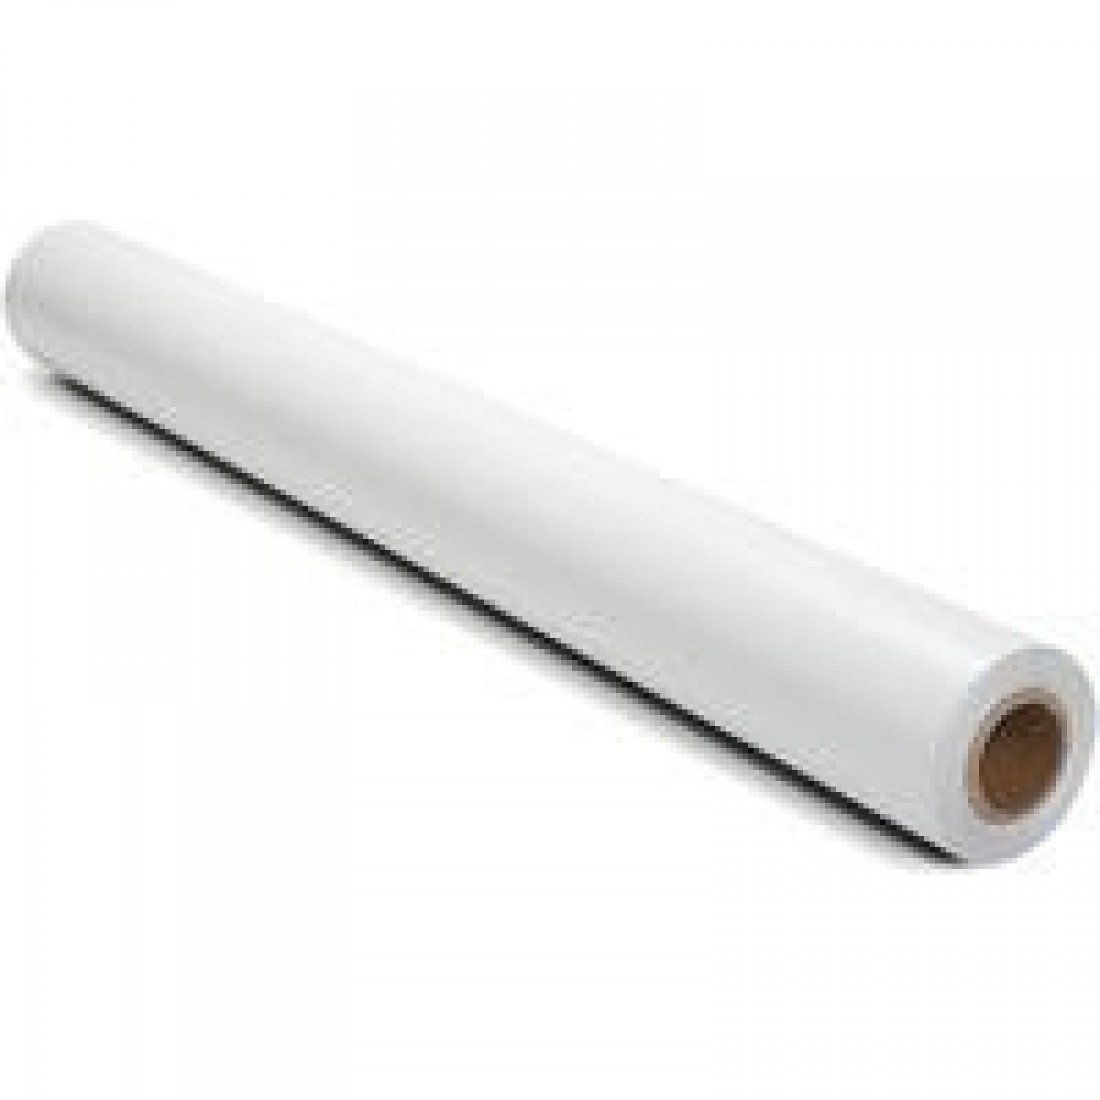 Xerox 003R06711 610mm 45m - Papel para plotter: Amazon.es: Oficina y papelería